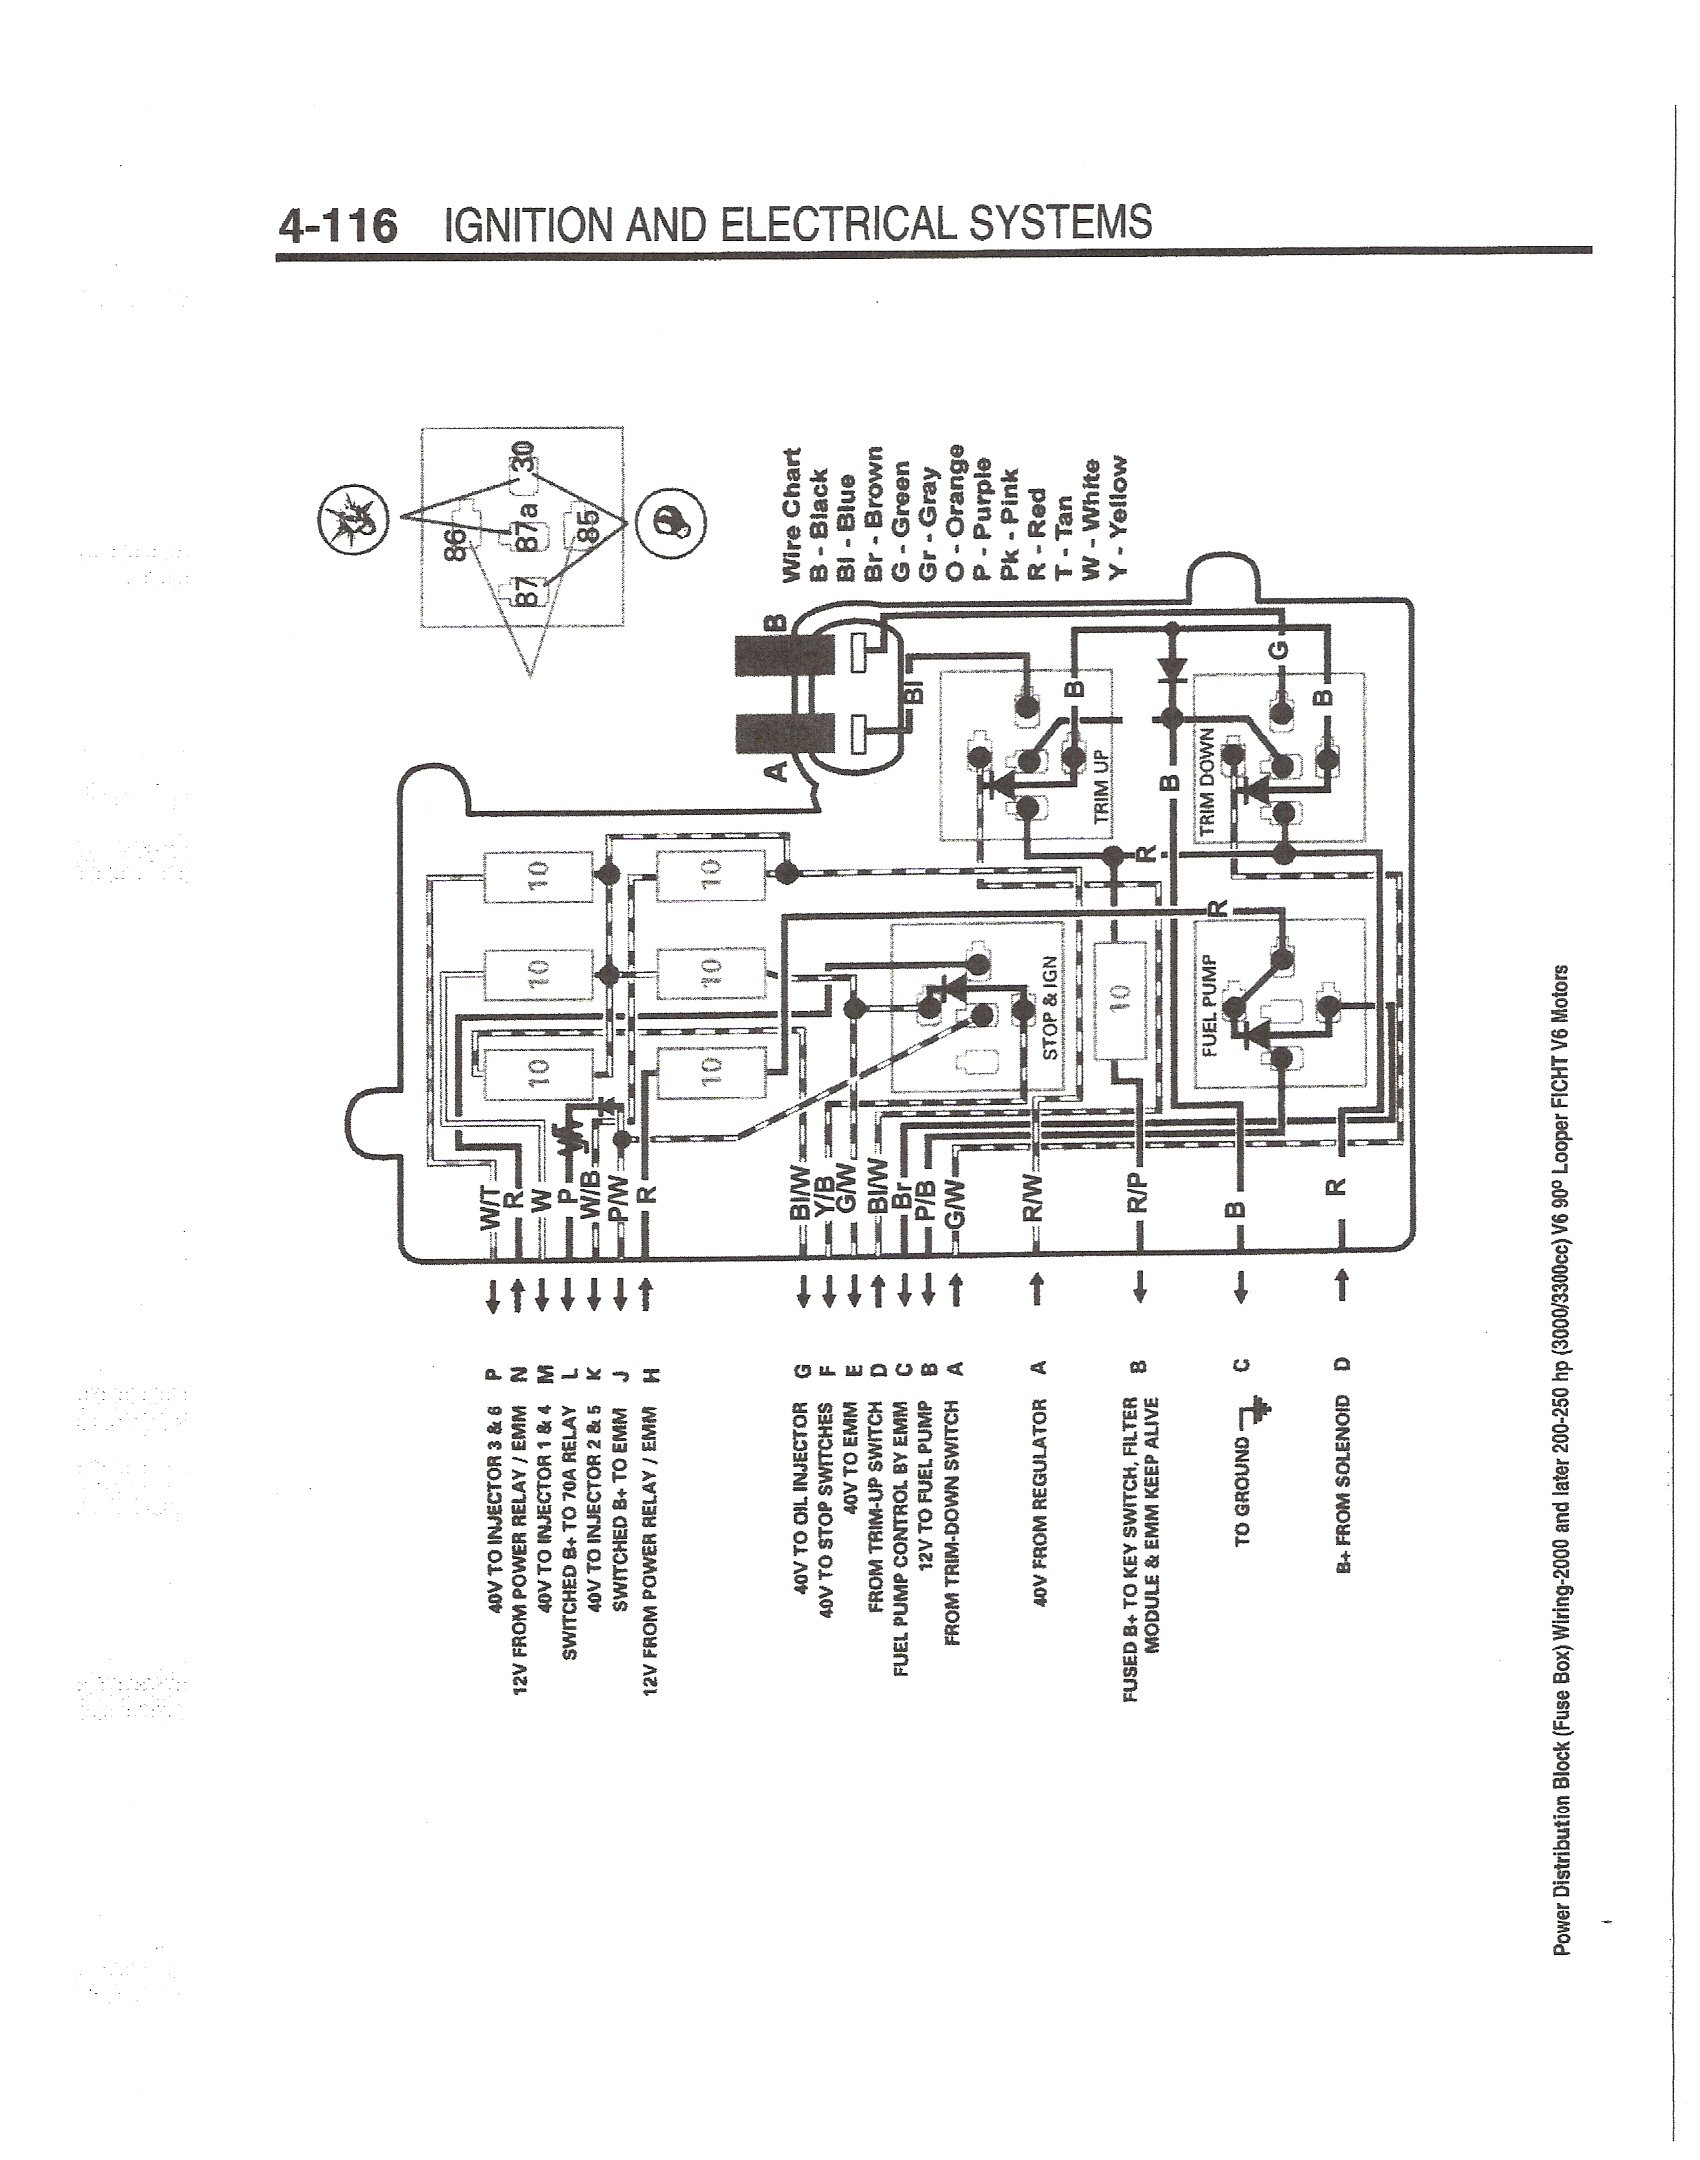 1998 Evinrude 150 Hp Ficht Key Switch Wiring Diagram